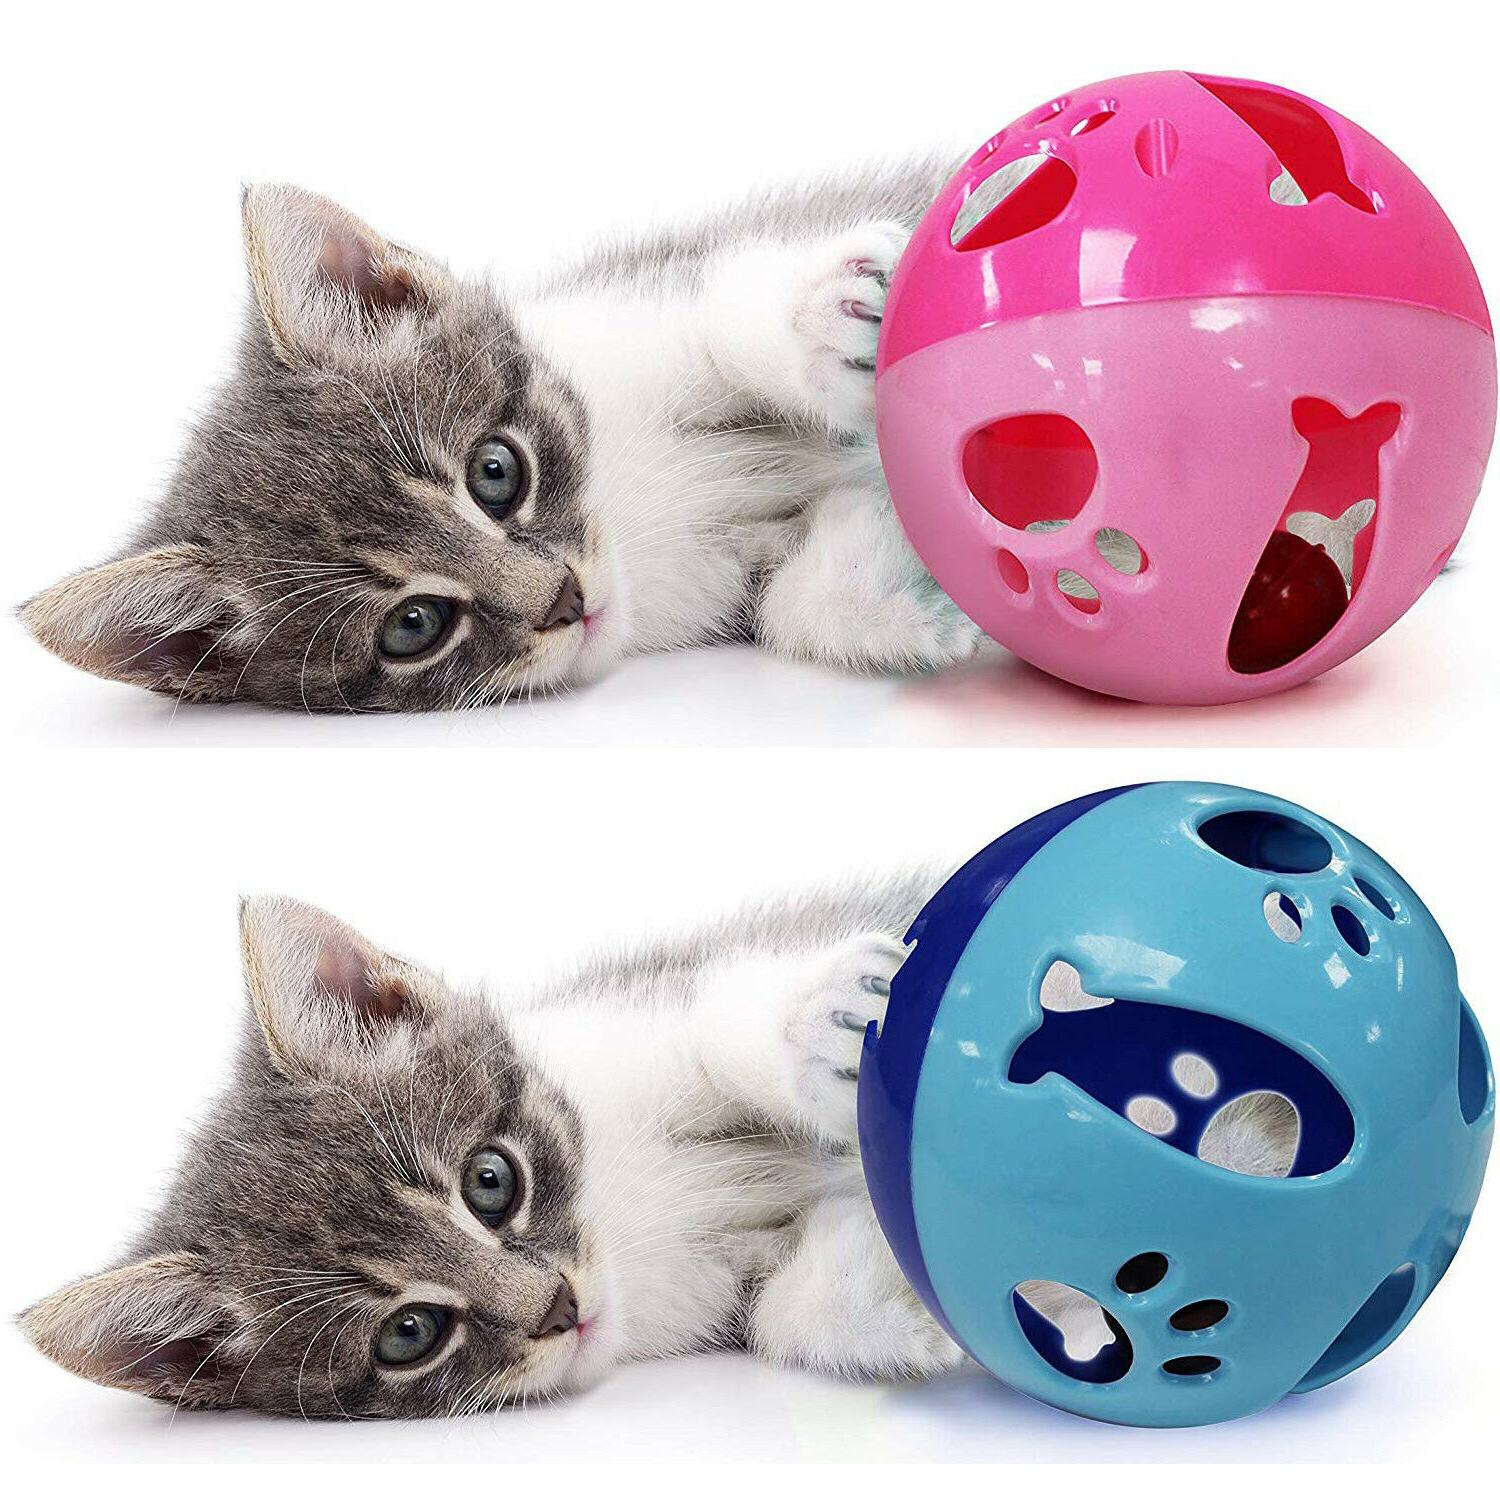 Pets Large Cat Toy Kittens and